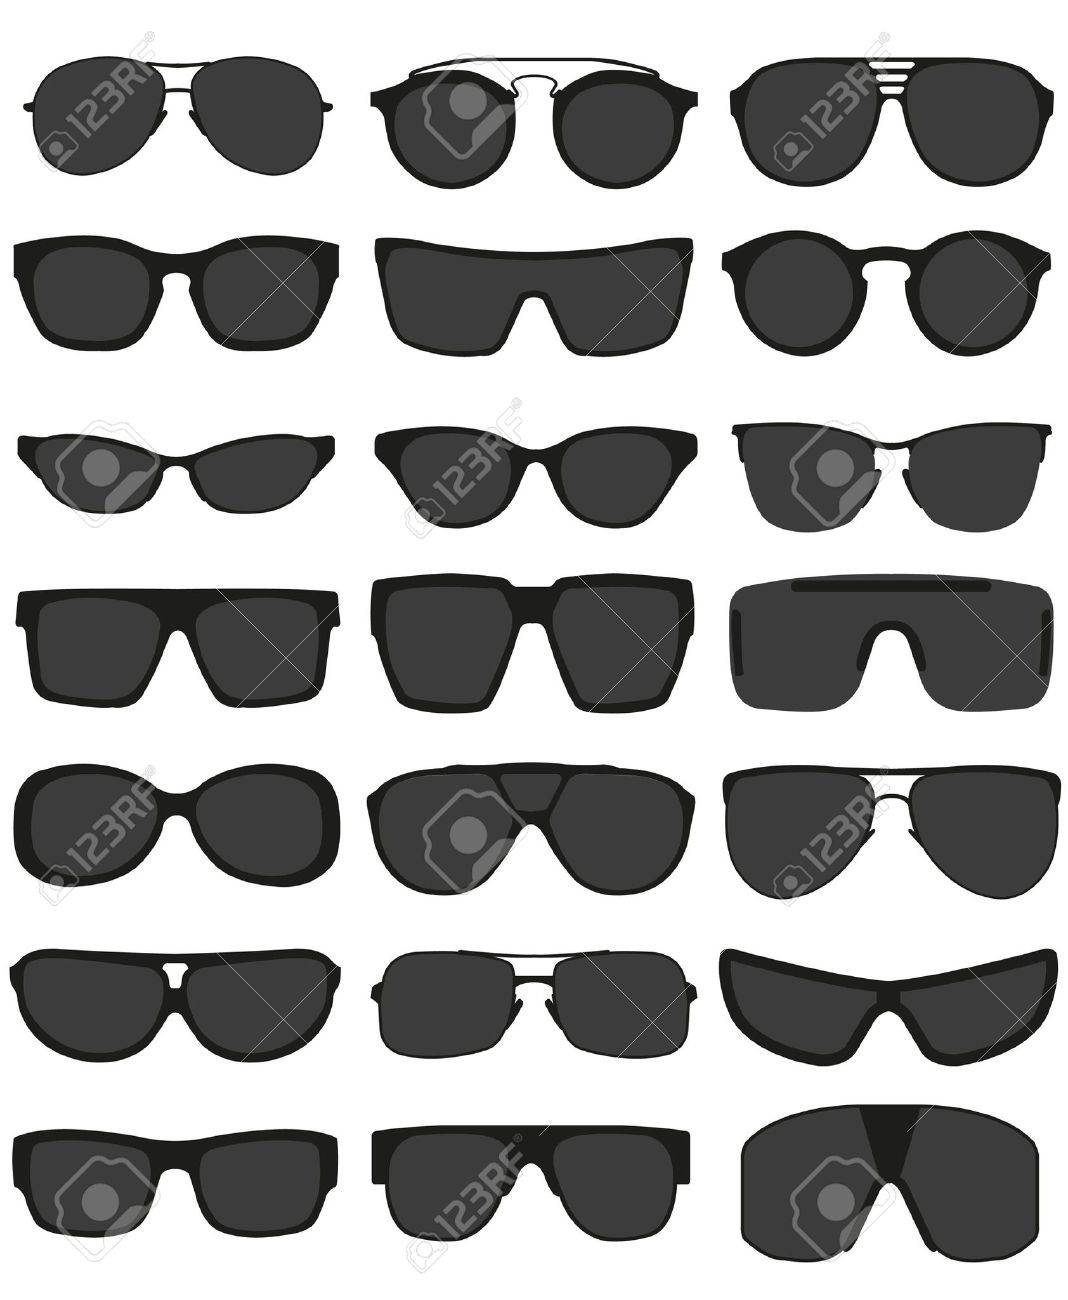 Glasses and sunglasses set Stock Vector - 19279815